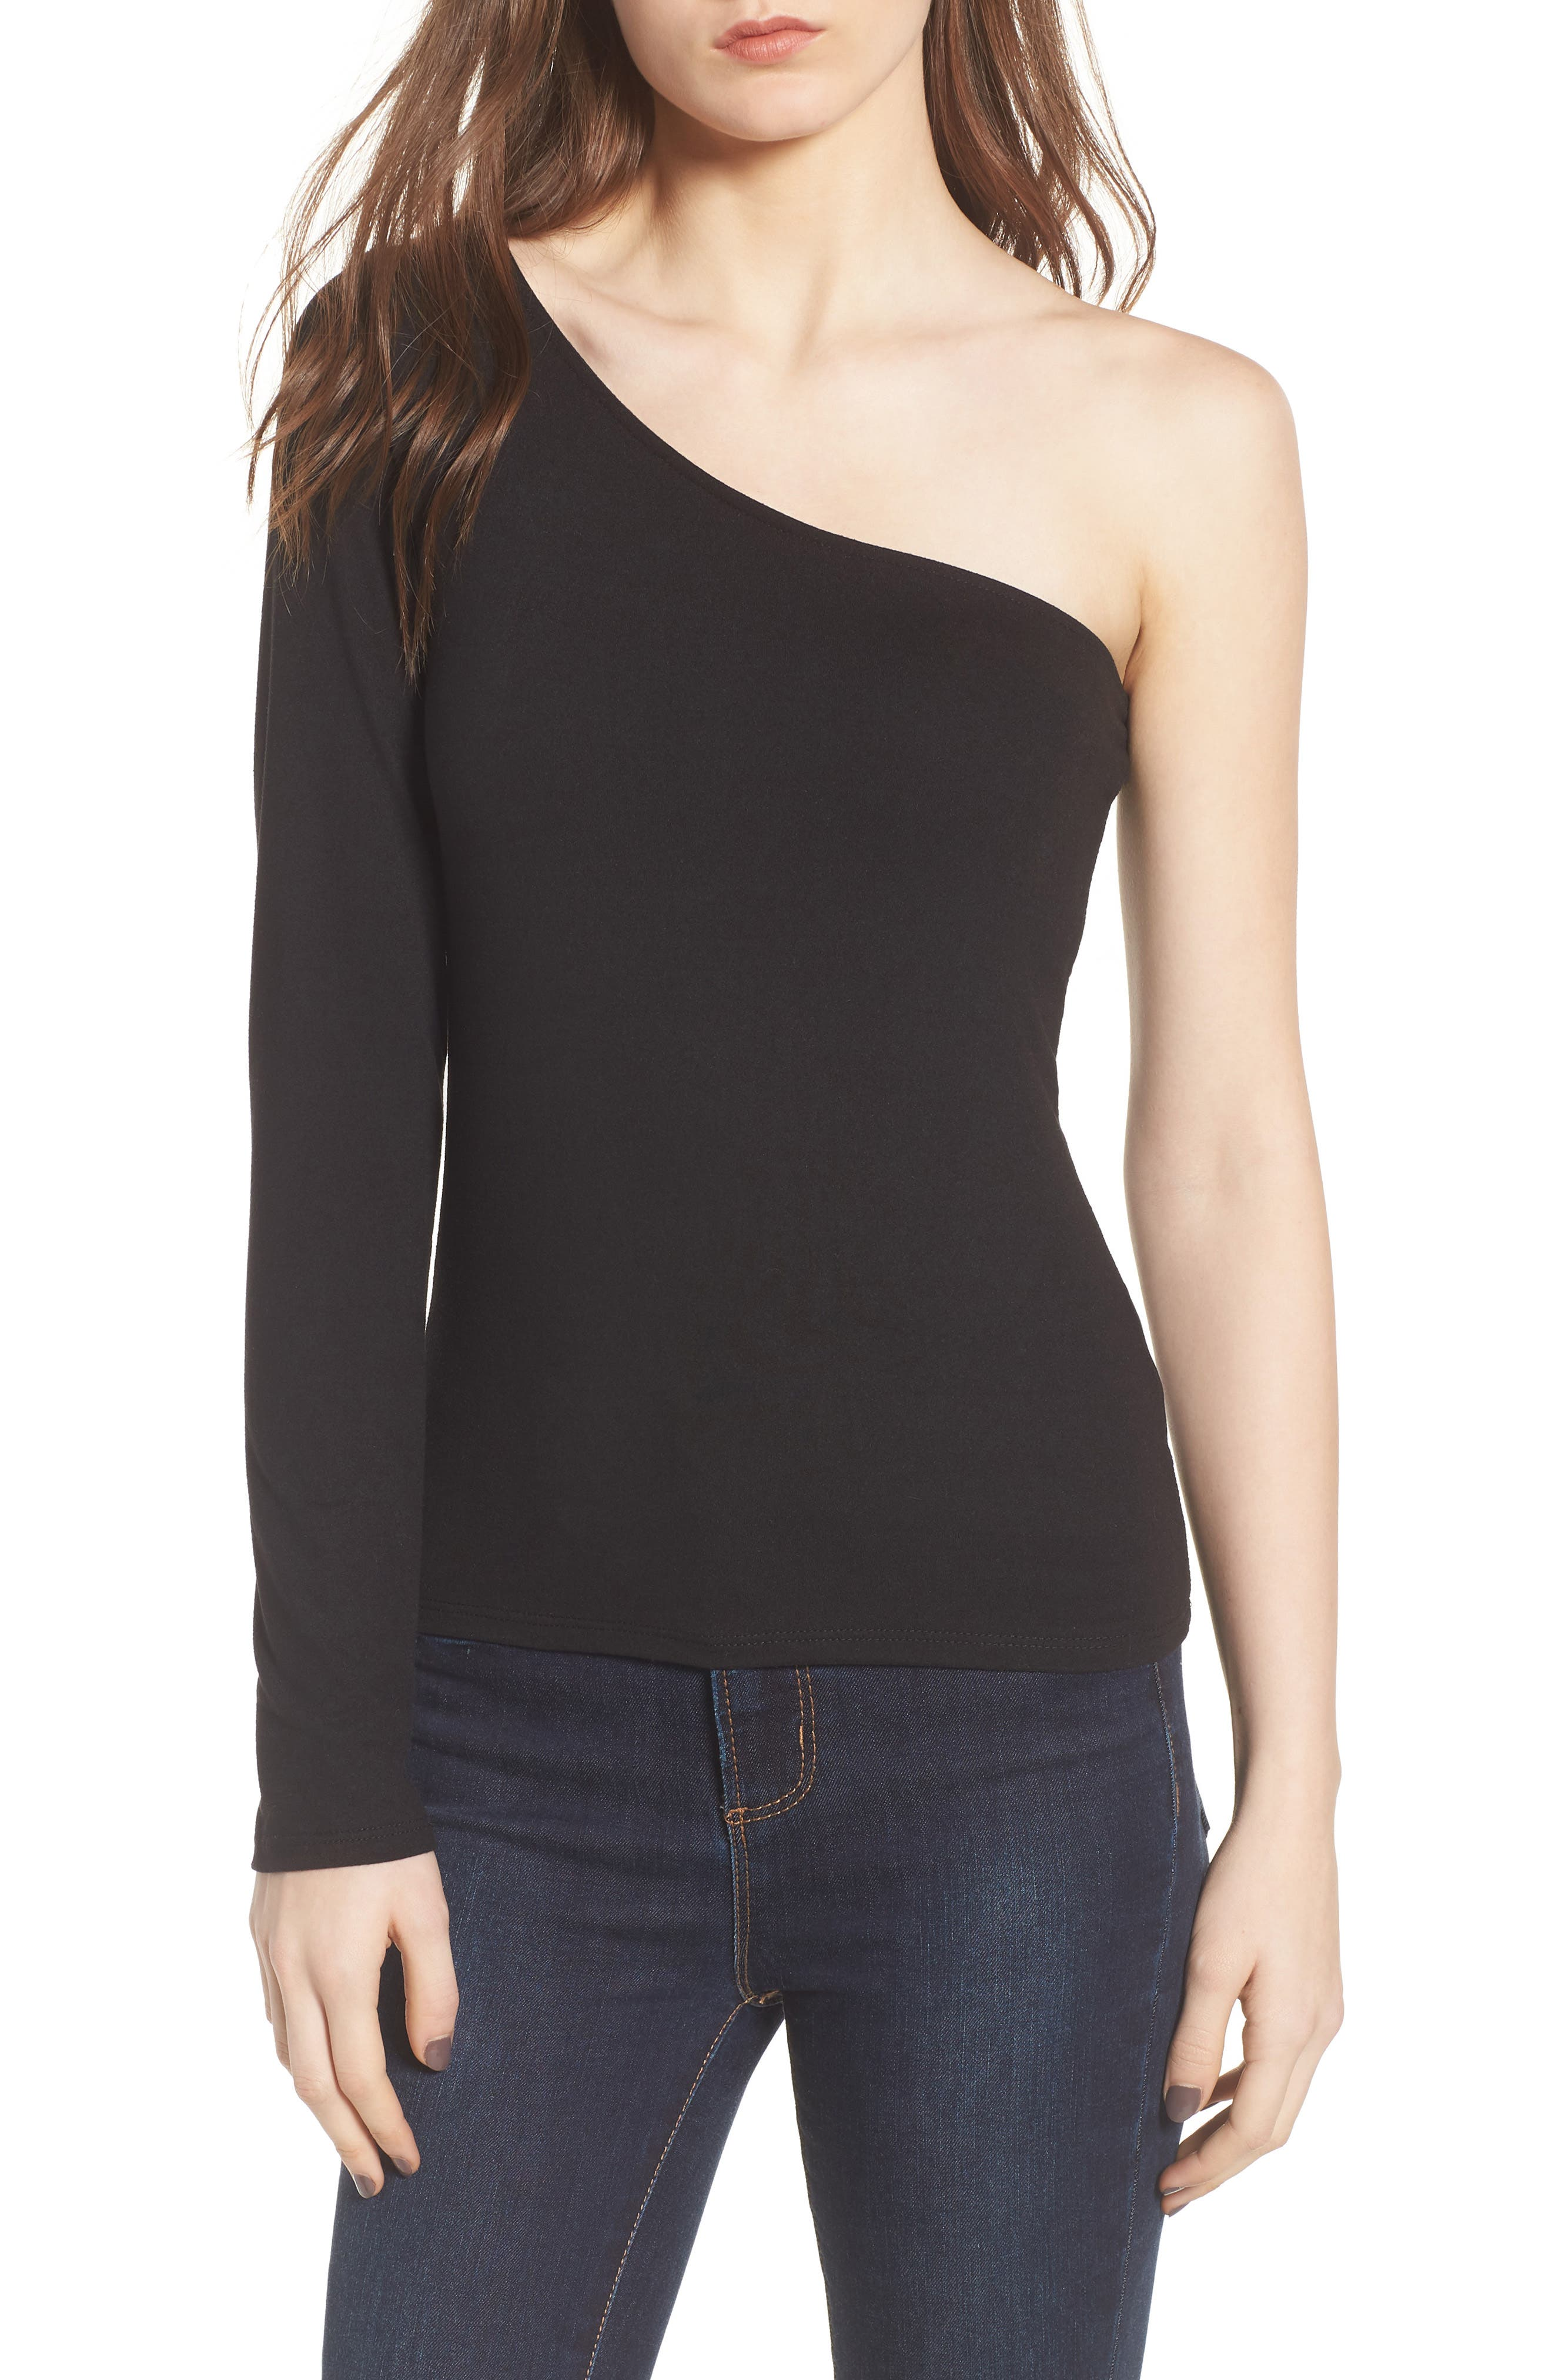 PST by Project Social T Second Skin One-Shoulder Top